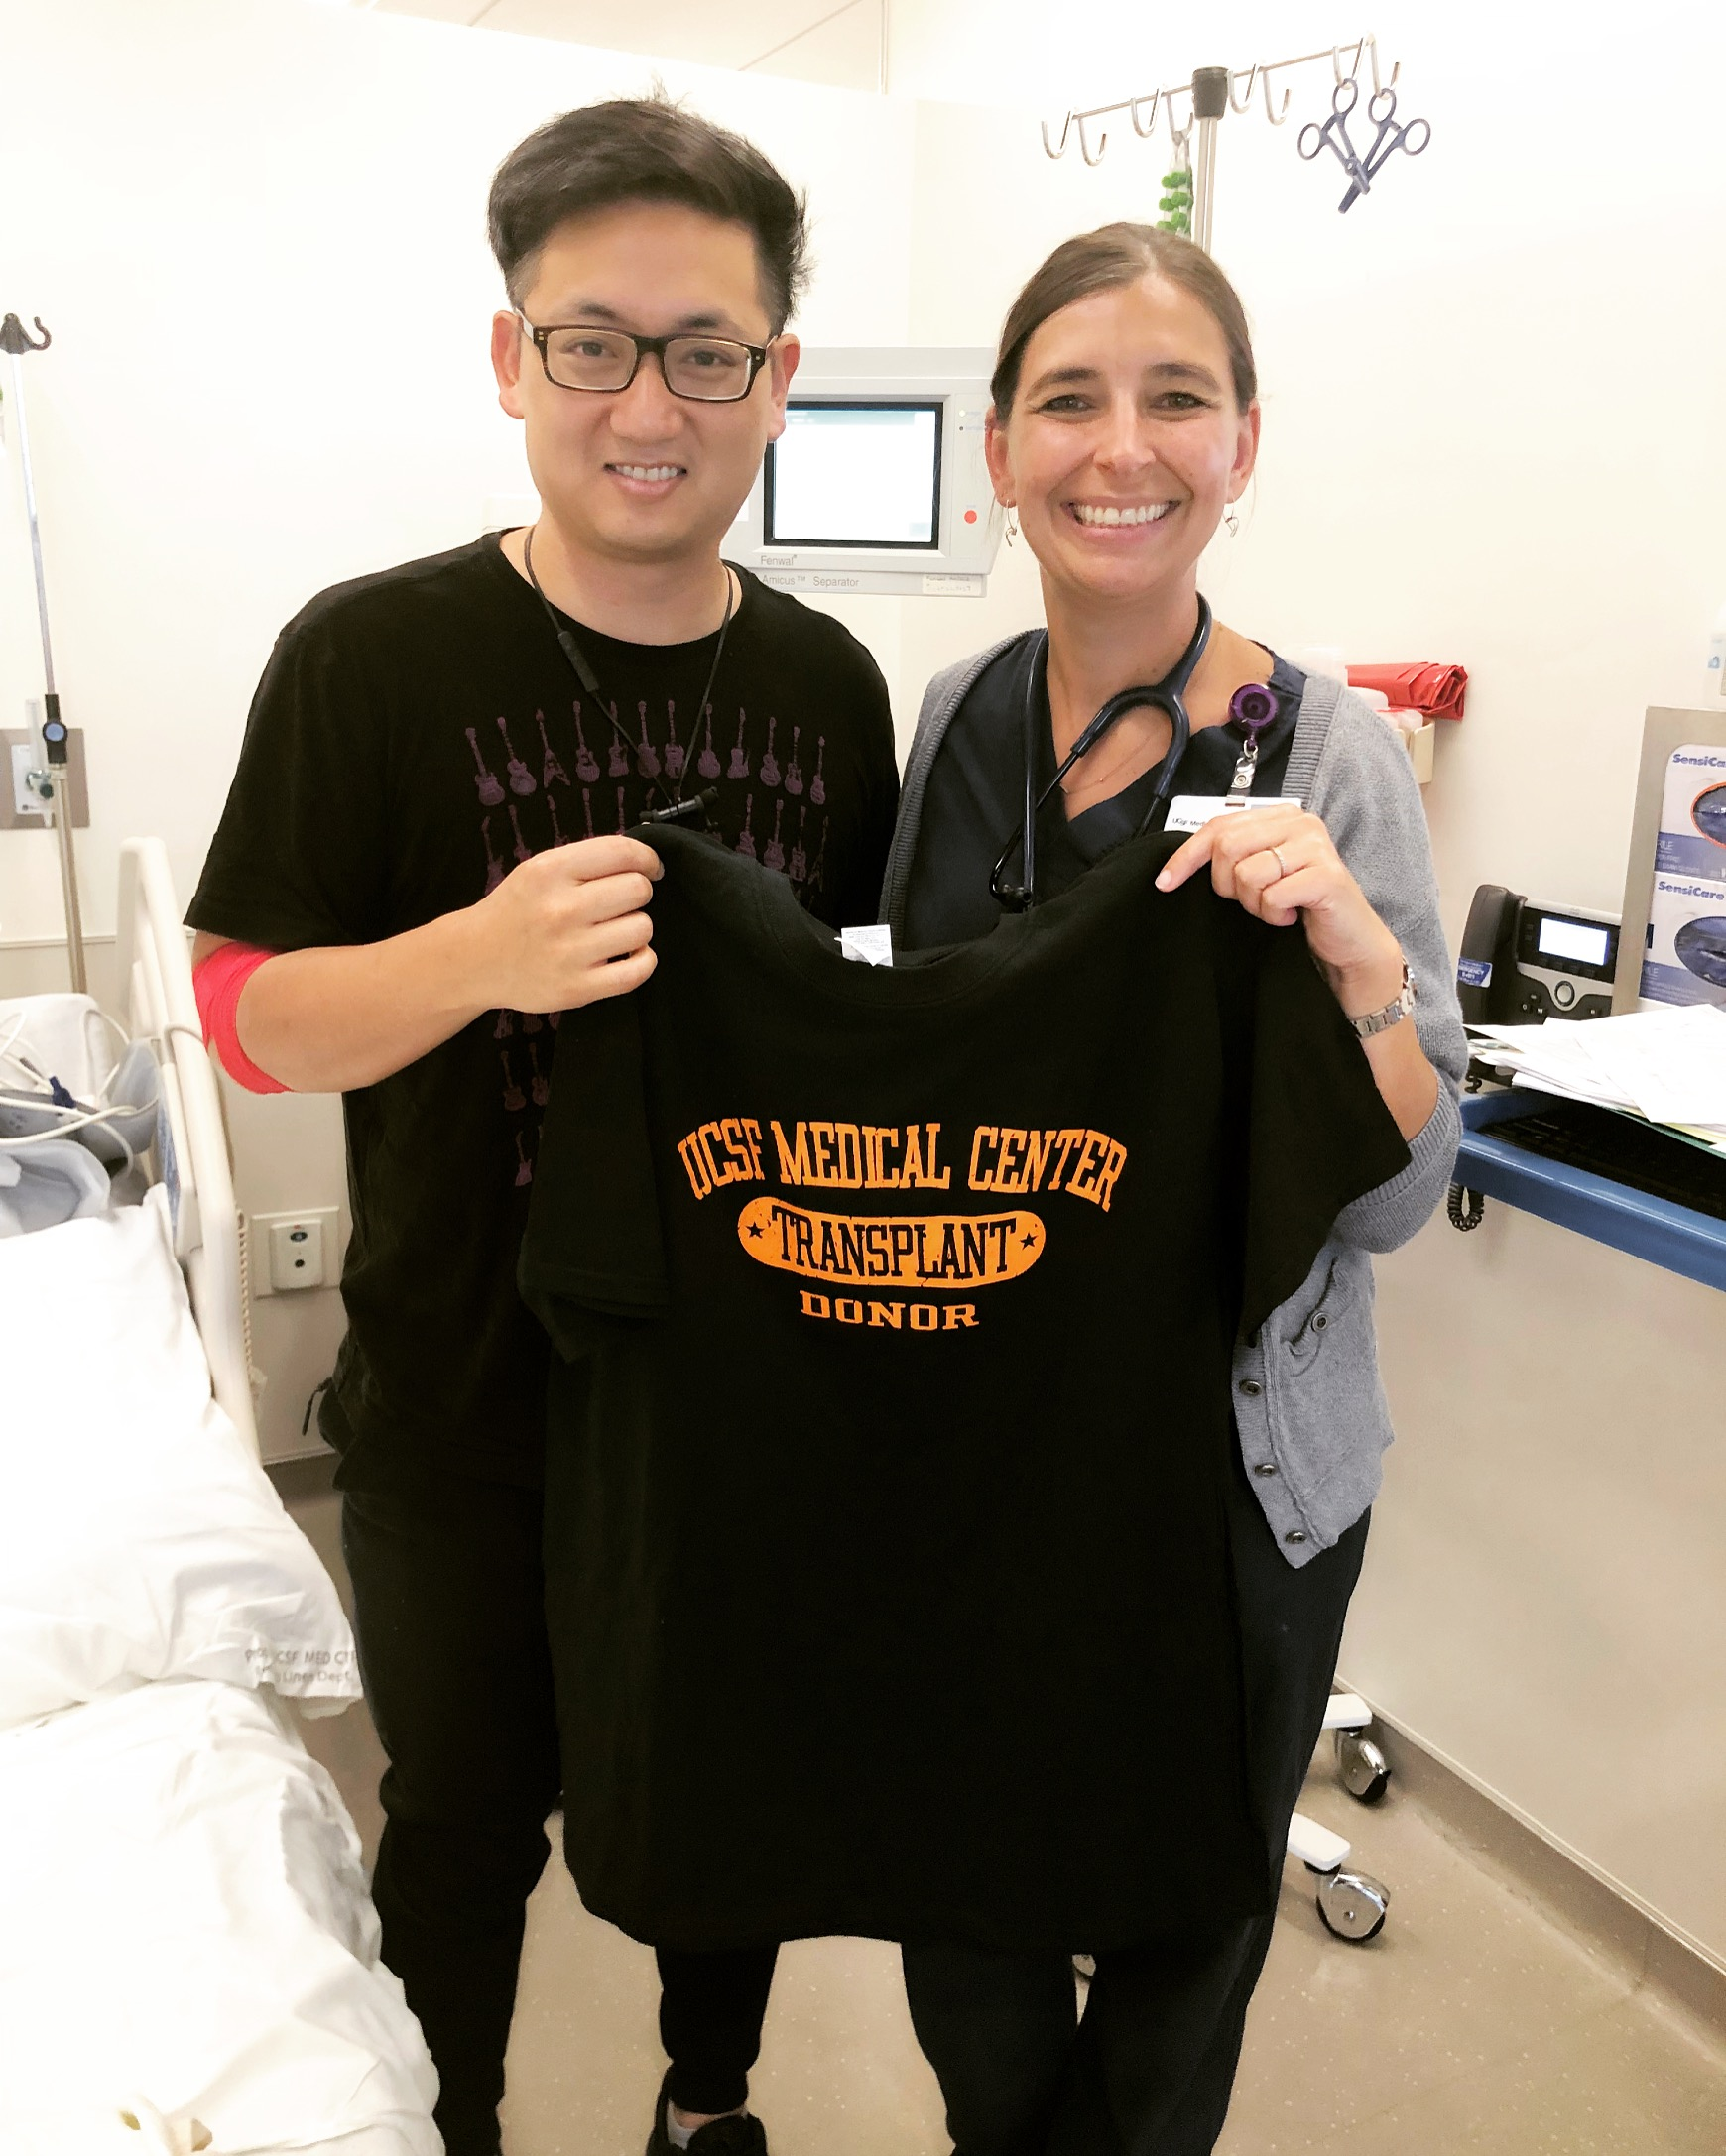 Tim with our amazing nurse Brenda at UCSF.